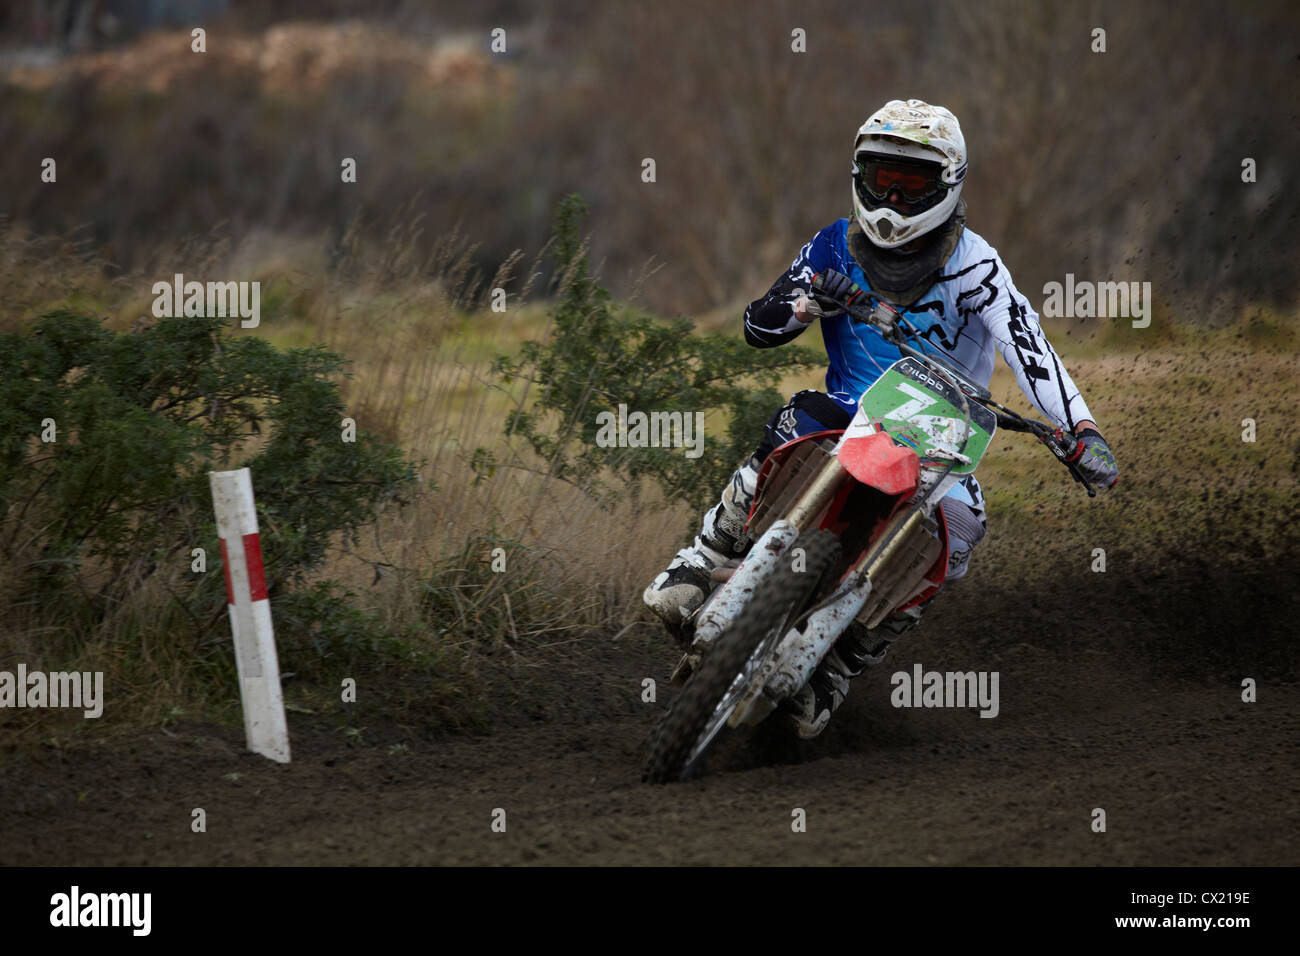 Motocross, Balclutha, South Otago, South Island, New Zealand - Stock Image